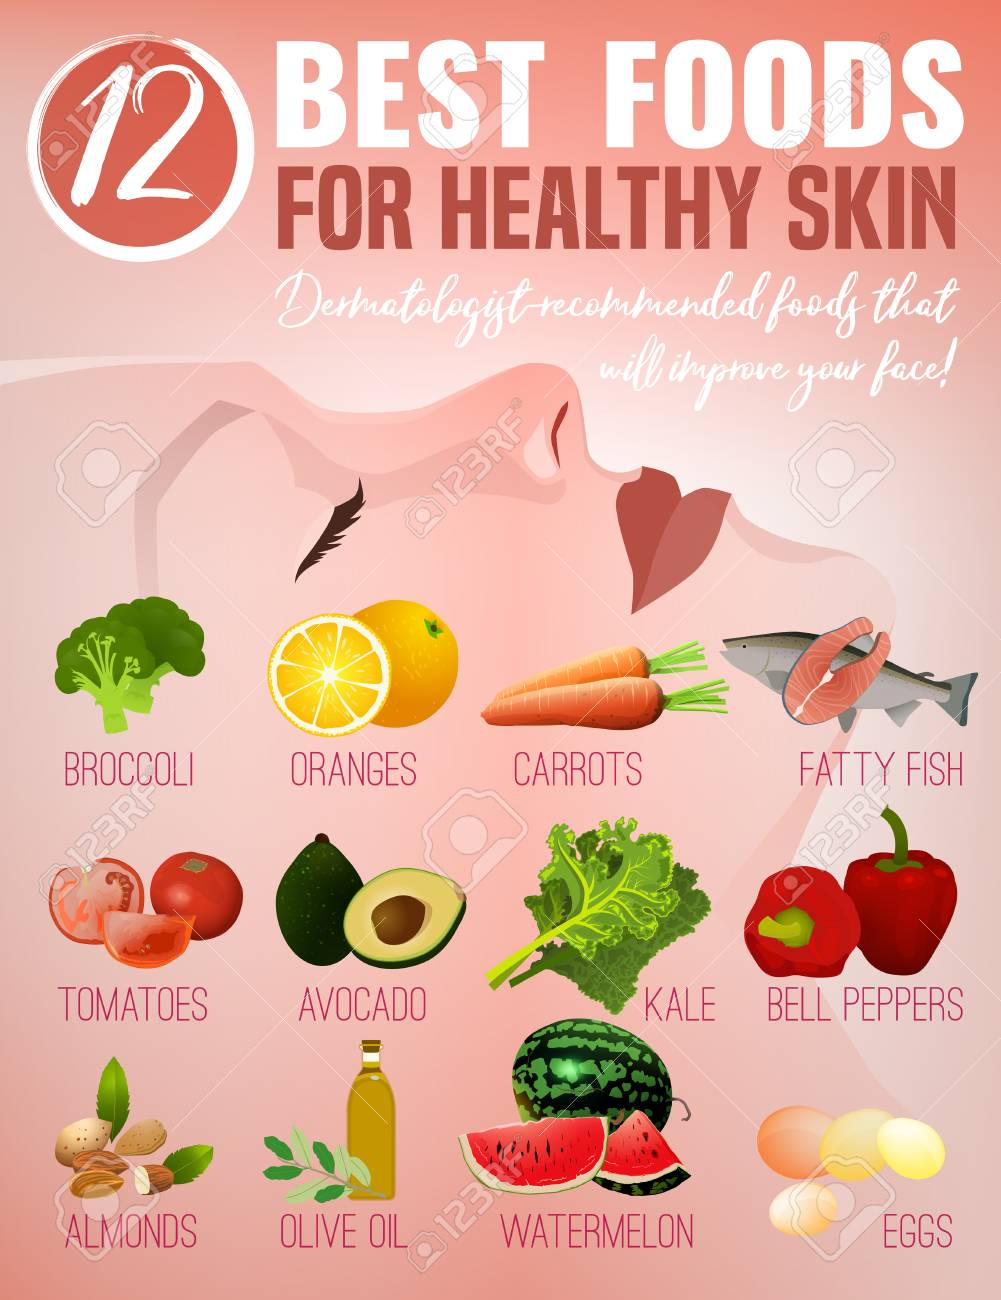 Twelve Best Foods For Healthy Skin Editable Vector Illustration Royalty Free Cliparts Vectors And Stock Illustration Image 102007383